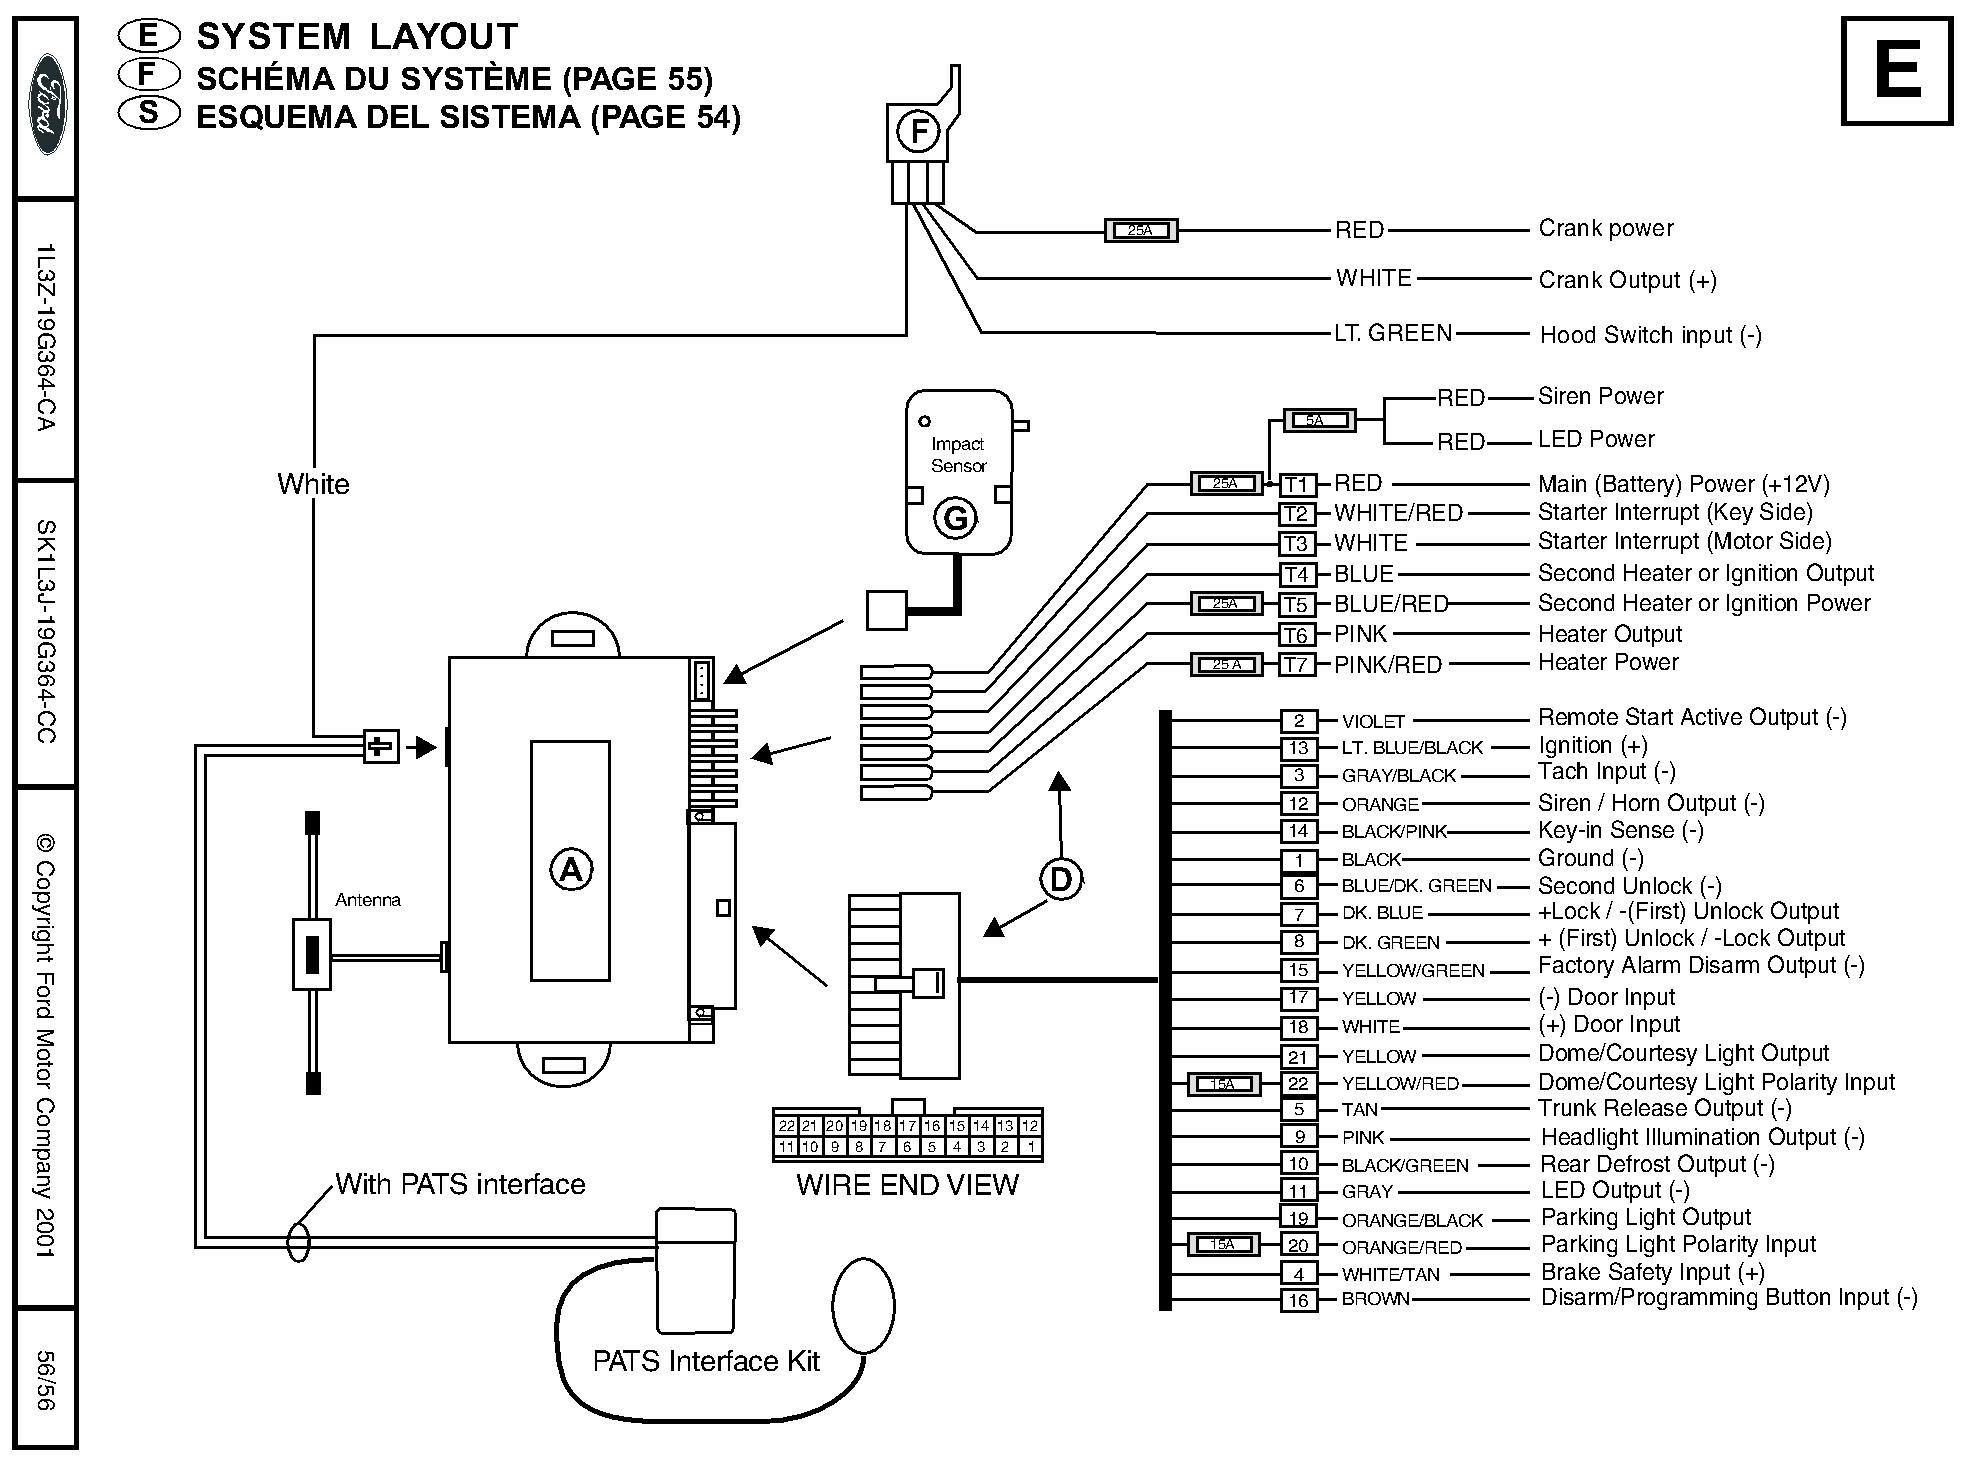 avital 4113 remote start wiring diagram avital remote start wiring diagram hecho avital 4x03 remote start wiring diagram | free wiring diagram #12